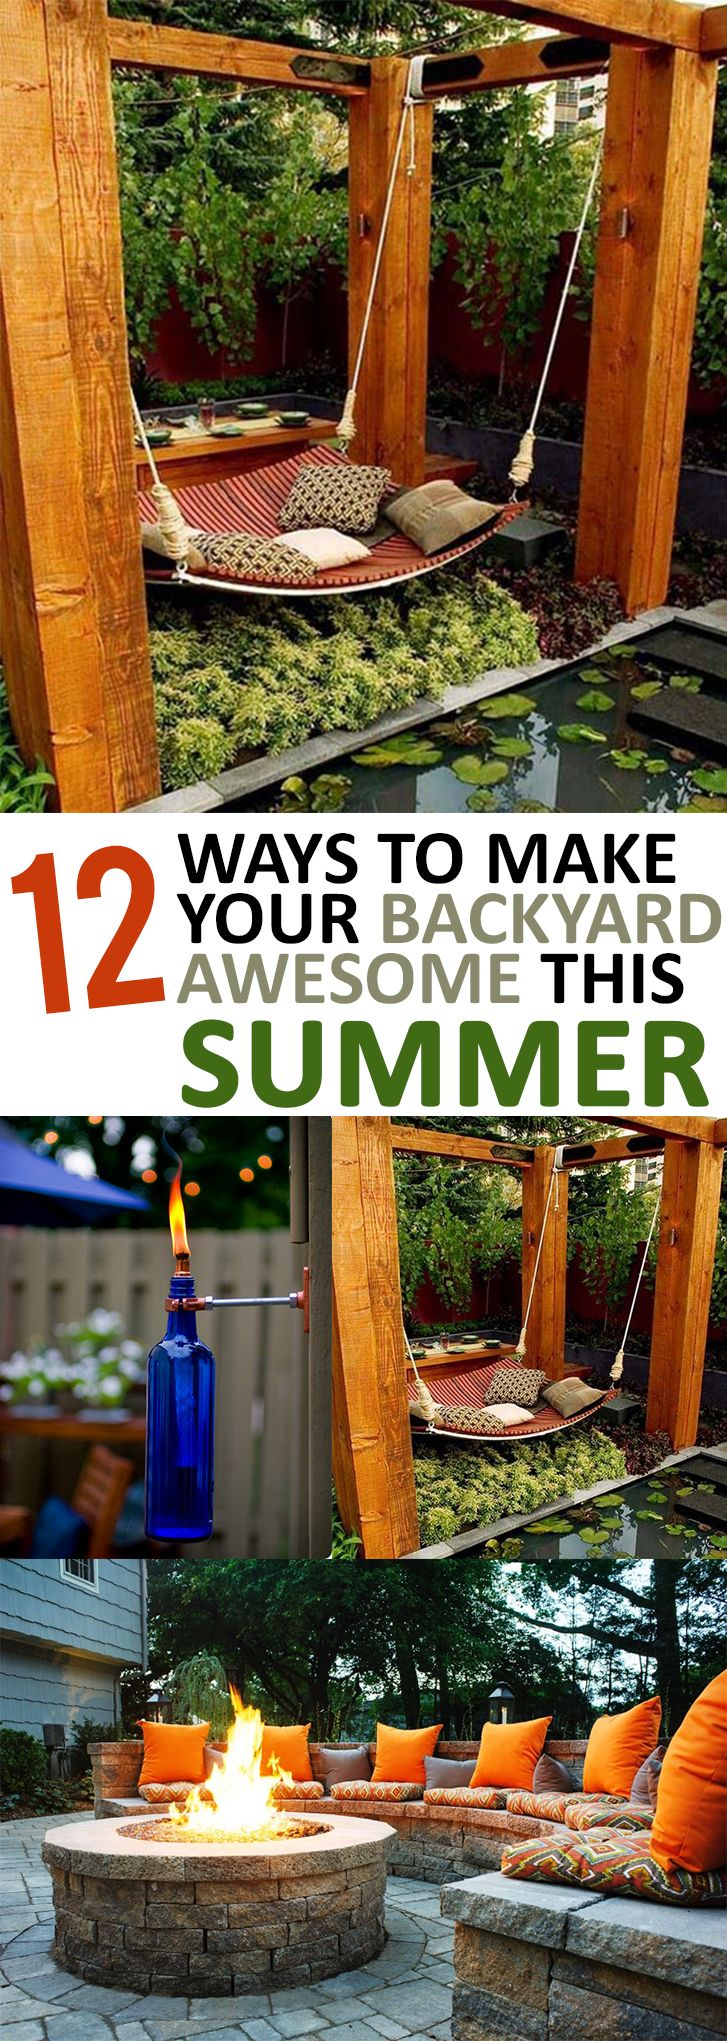 12 Great Ideas For A Modest Backyard: 12 Ways To Make Your Backyard Awesome This Summer